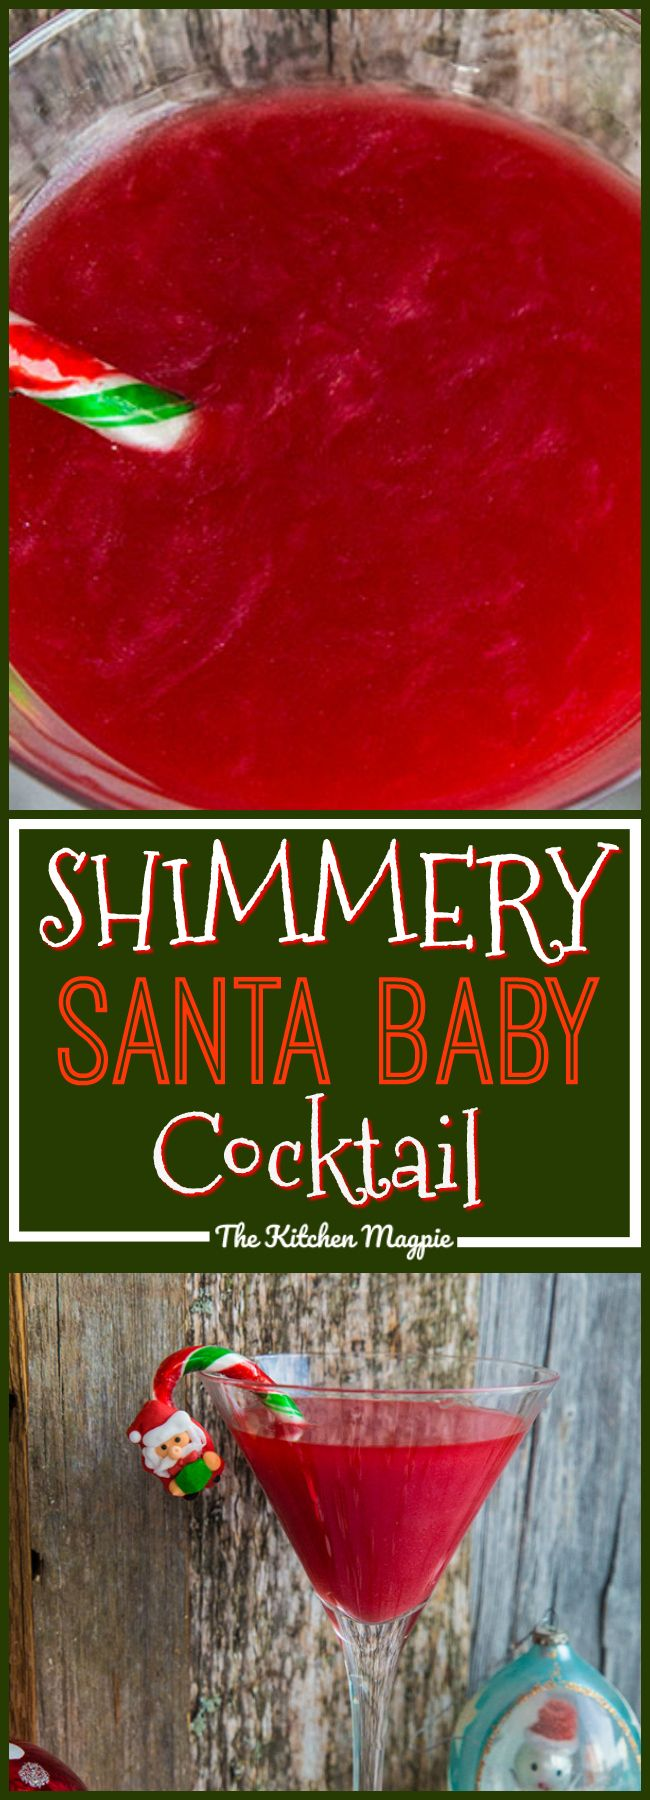 What's red, sparkly & tastes like strawberries? My newShimmery Santa Baby Cocktail! This is THE cocktail for Christmas! Only 4 ingredients!  Recipe from @kitchenmagpie #cocktail #christmas #boozy #drinks #party #recipe #strawberry  via @kitchenmagpie